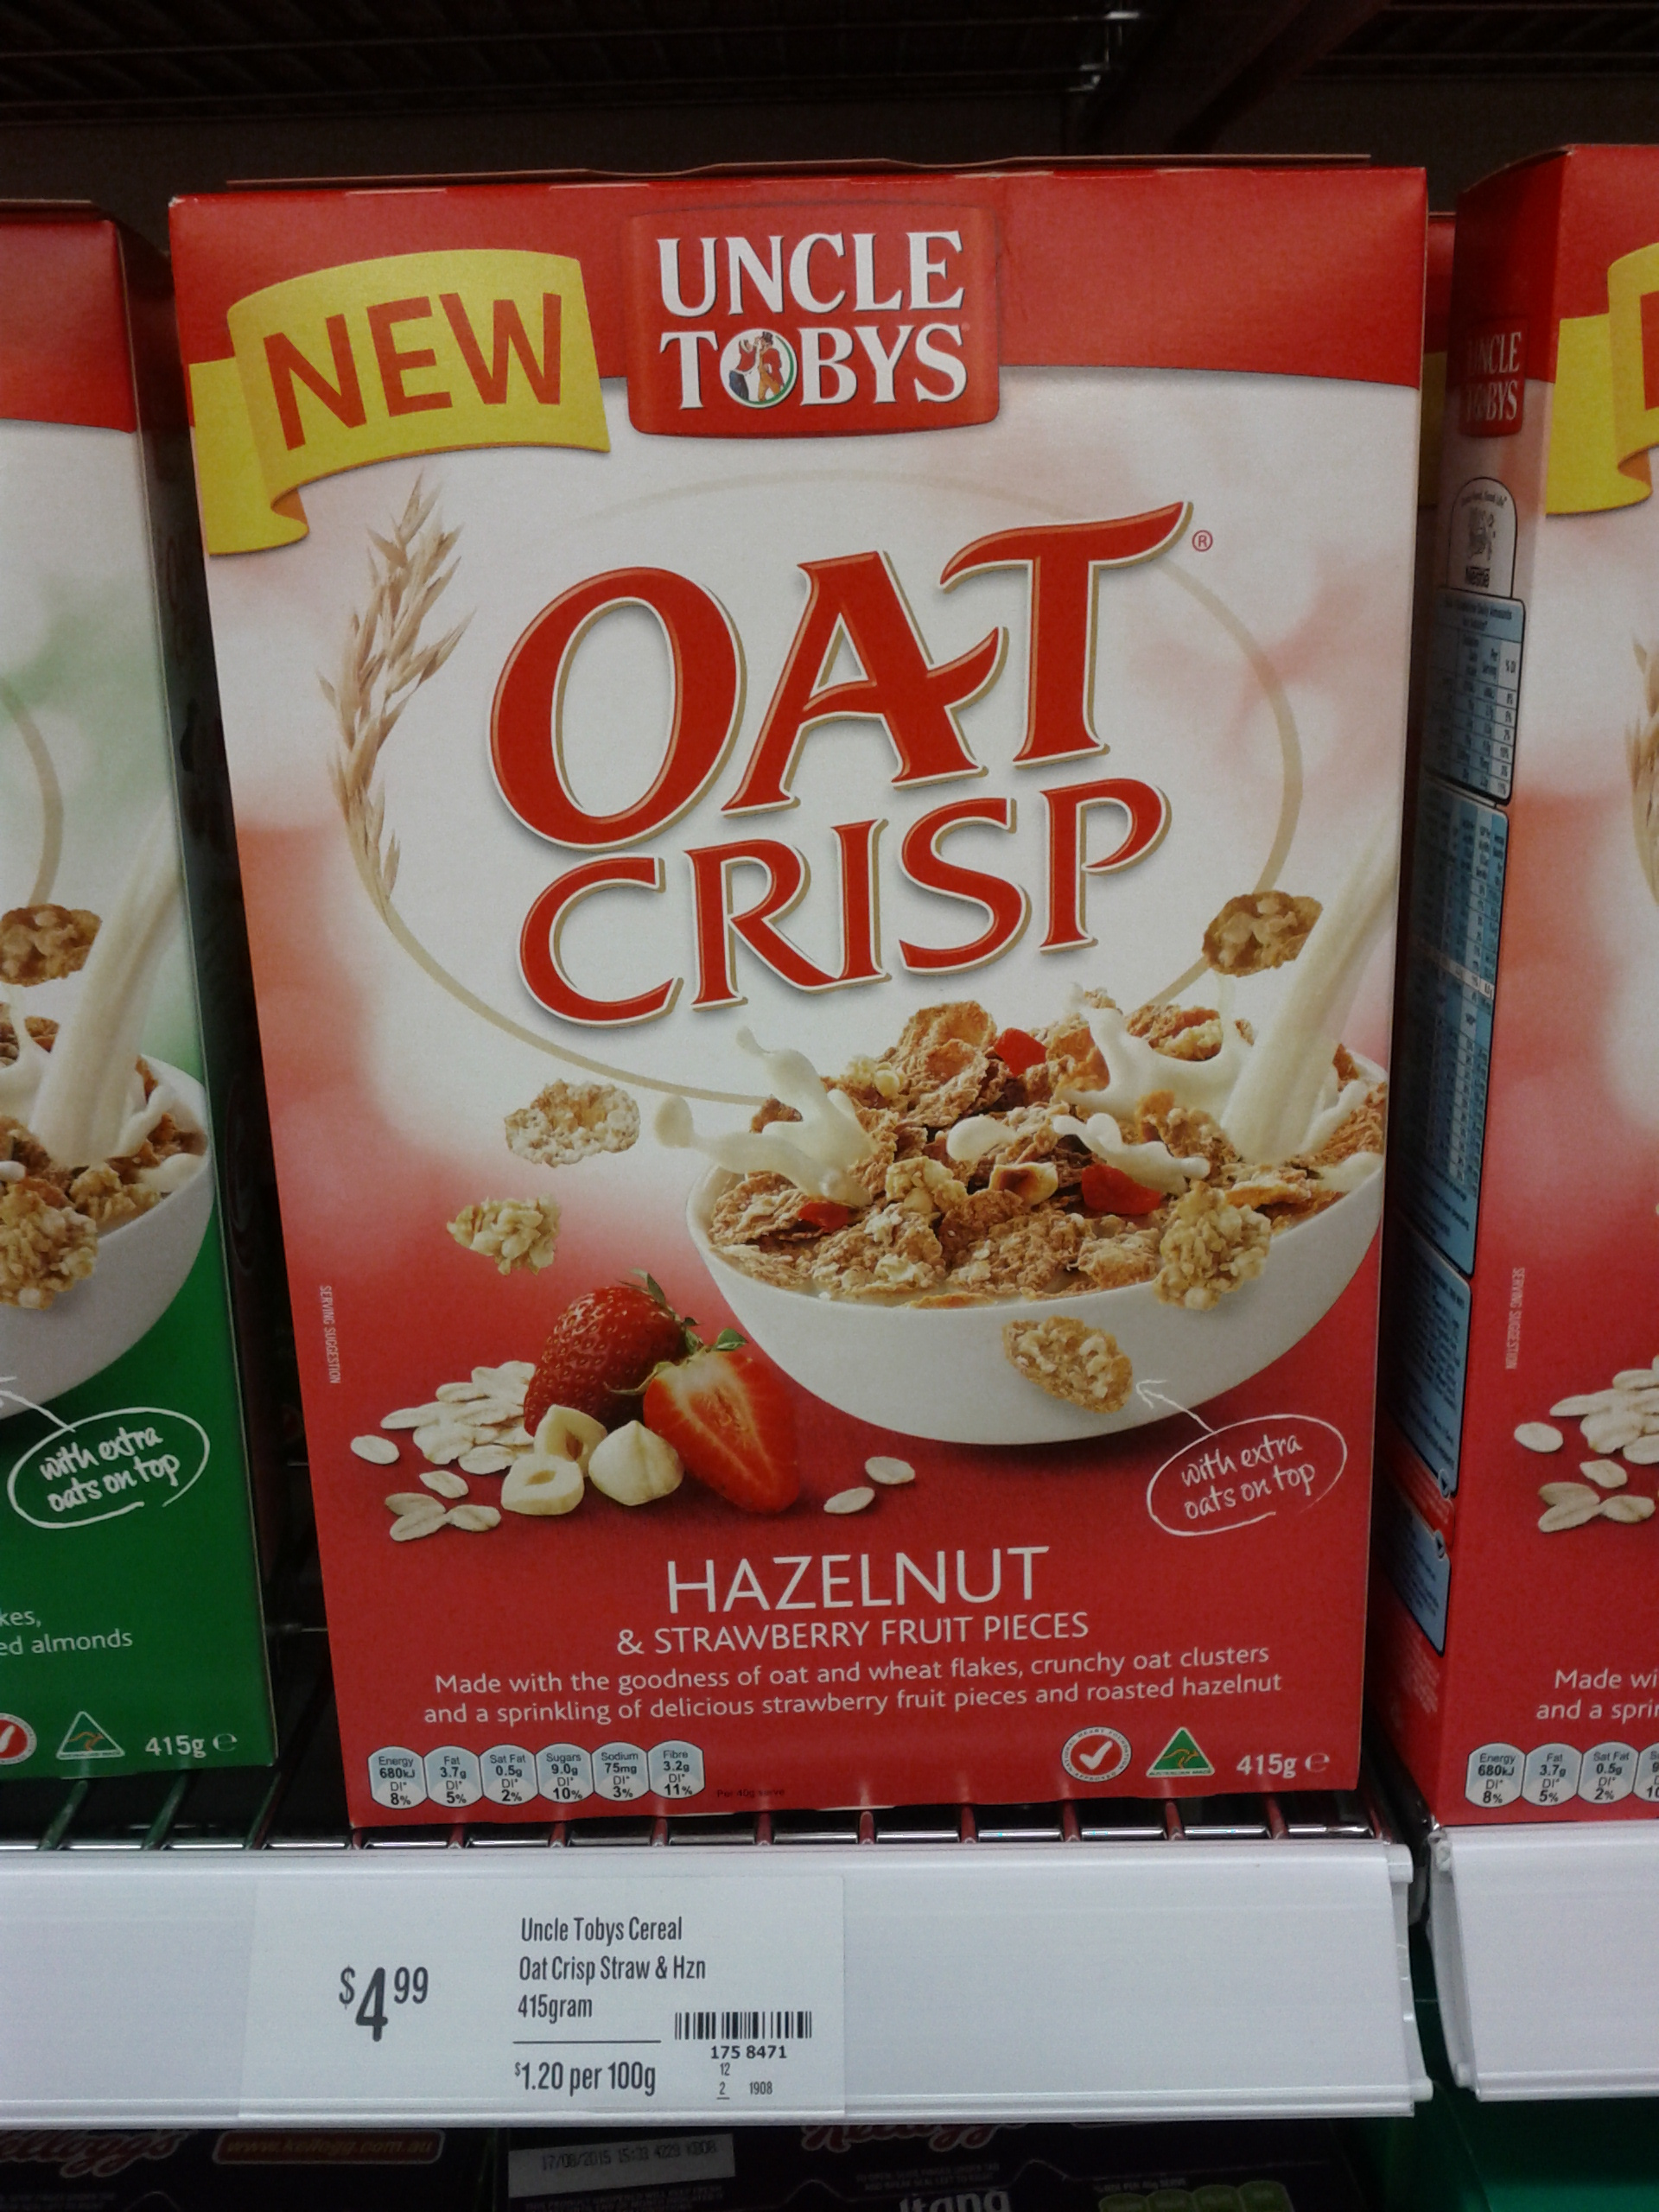 Uncle Tobys 415g Oat Crisp Hazelnut and Strawberry